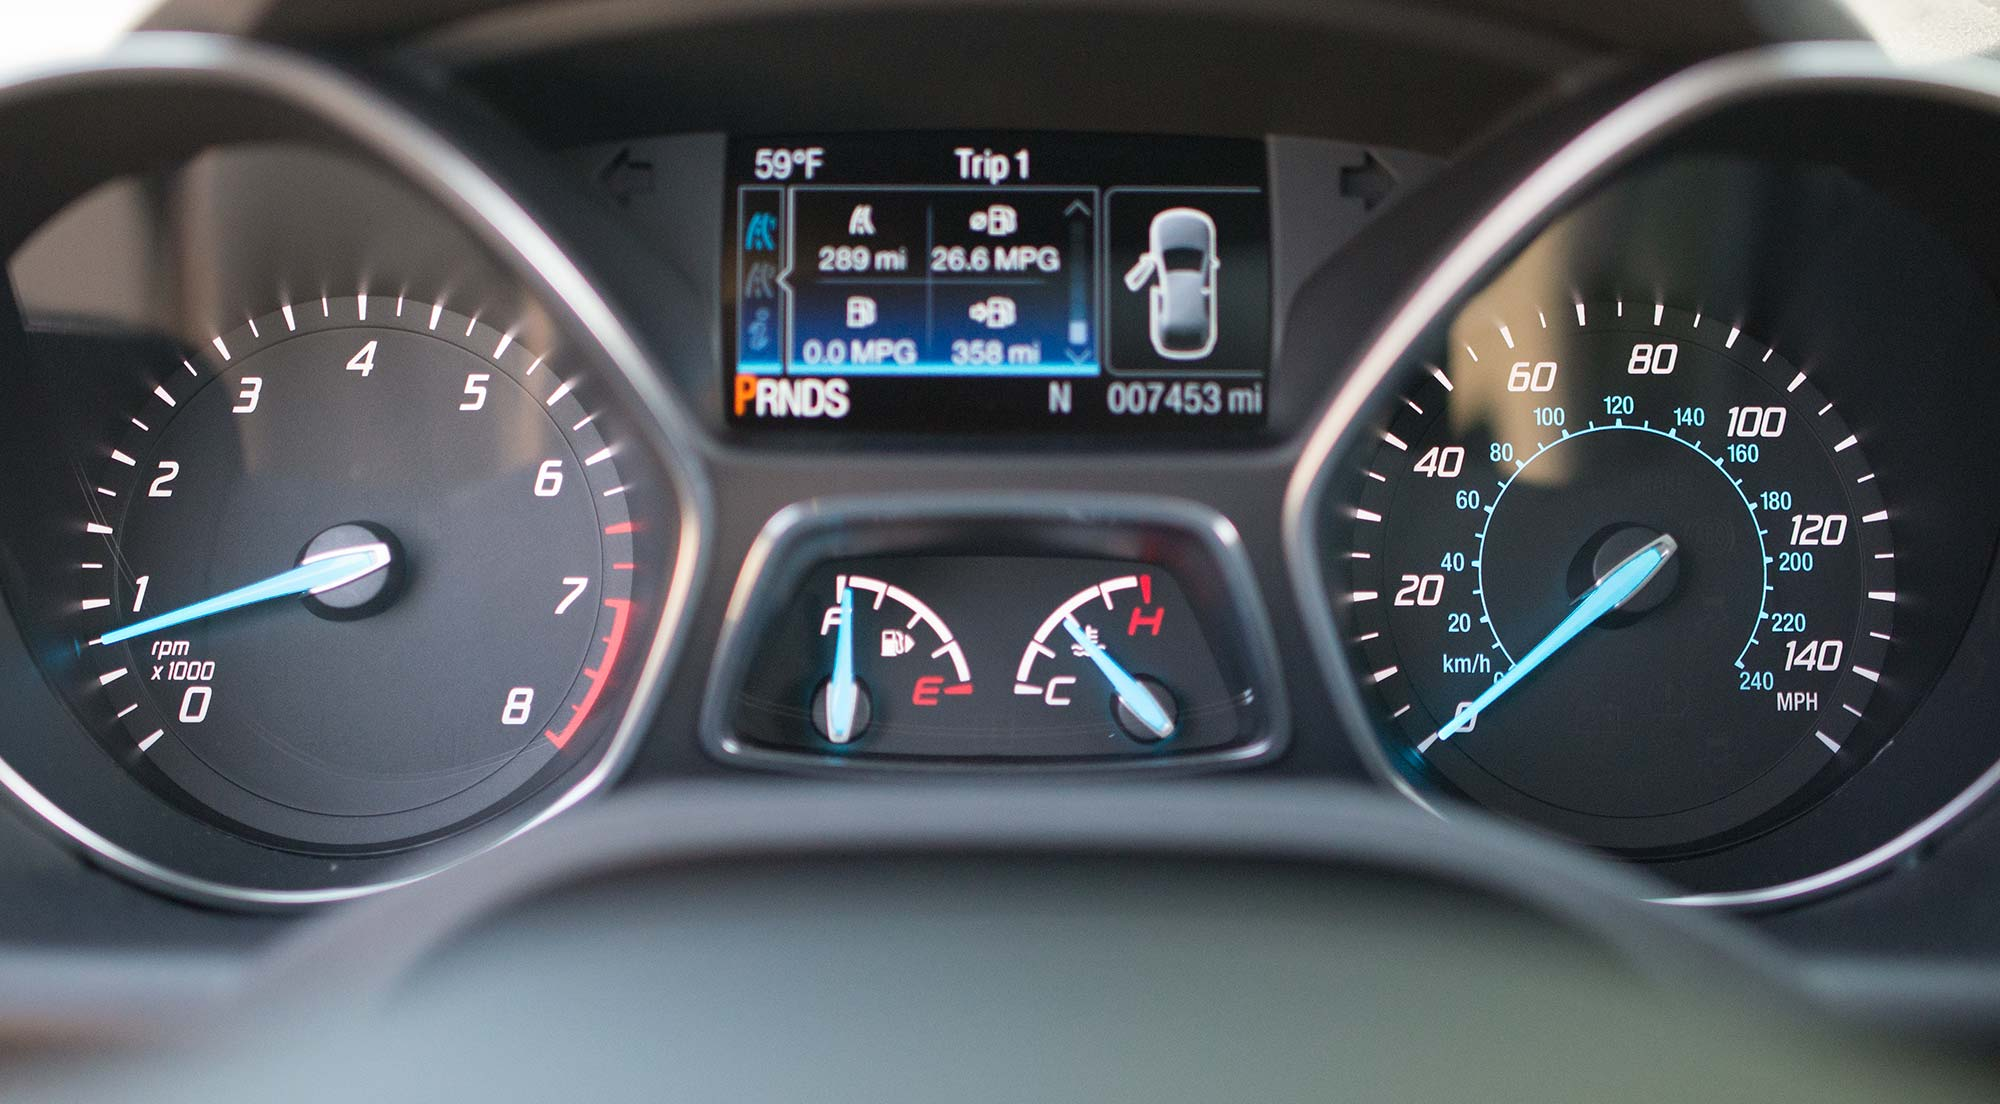 2014 Ford Escape Gauges